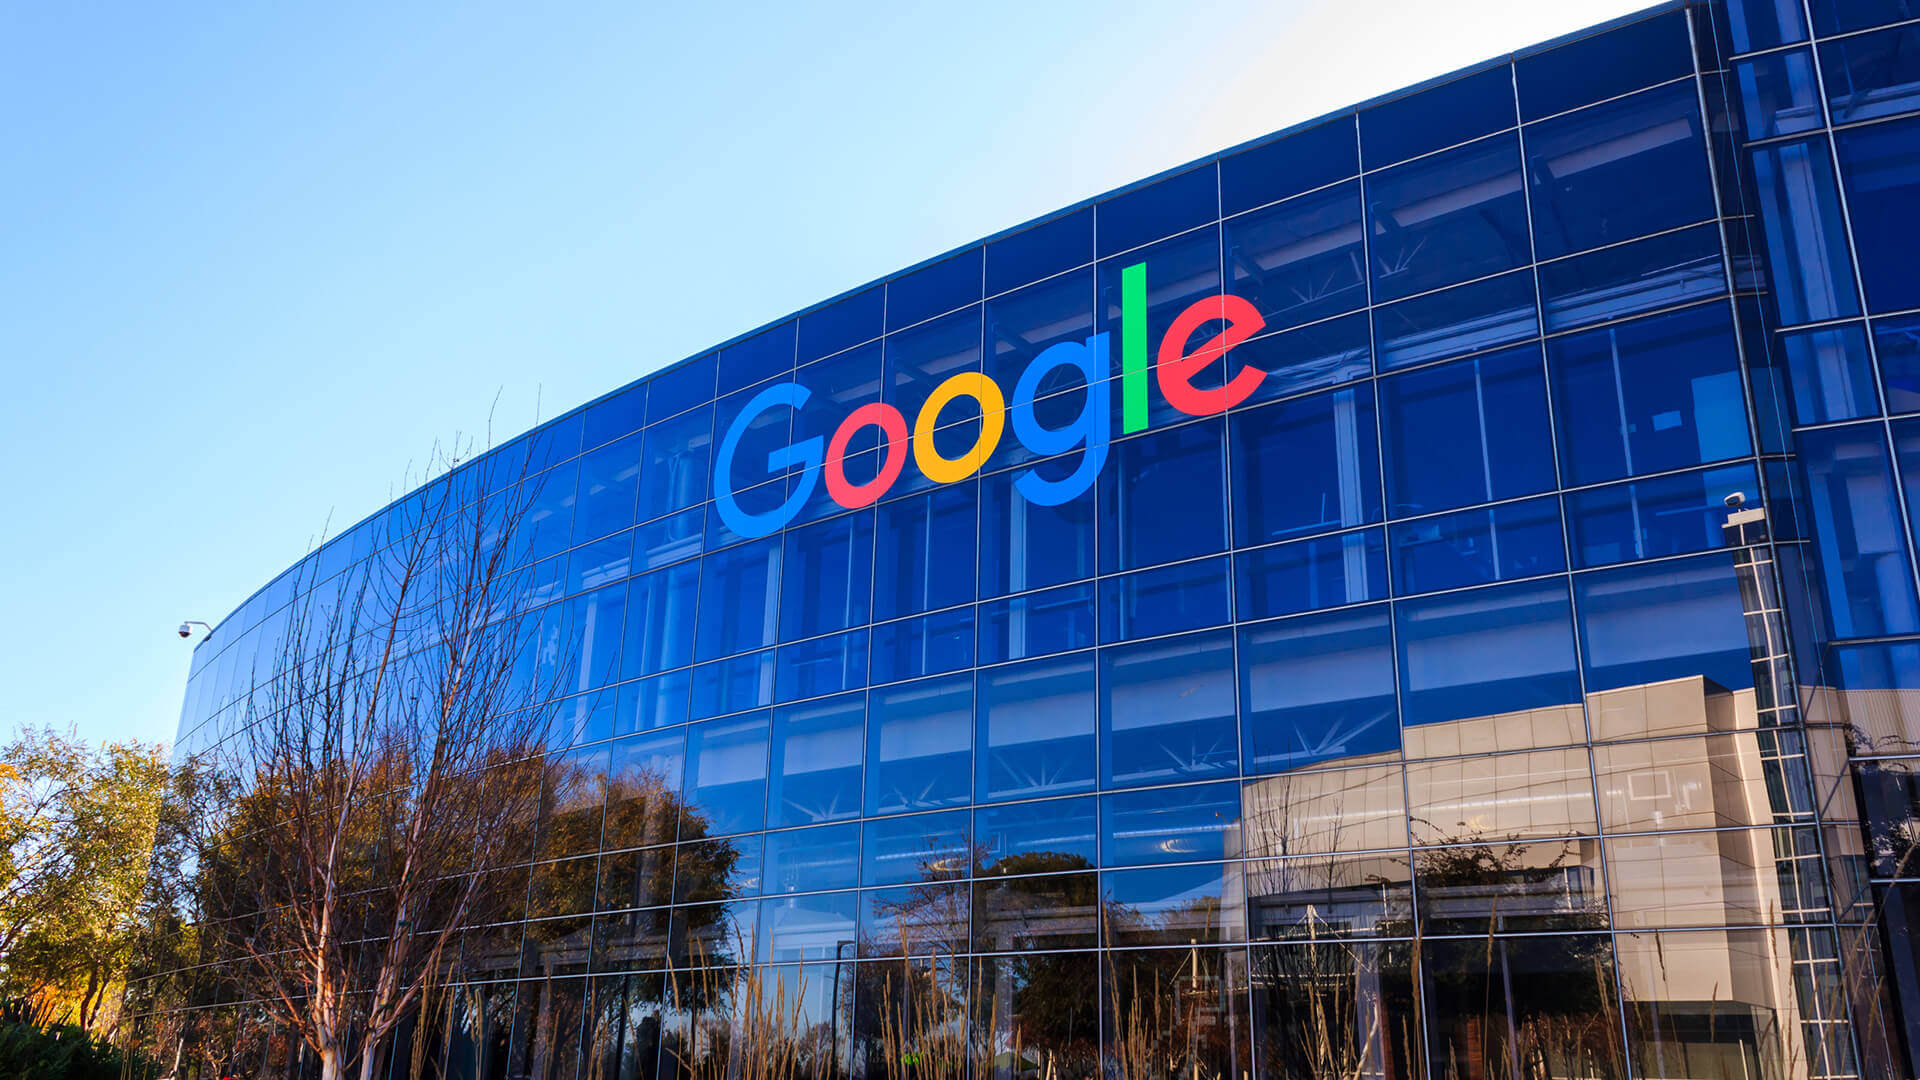 5 takeaways for marketers from Google's Q4 2019 earnings